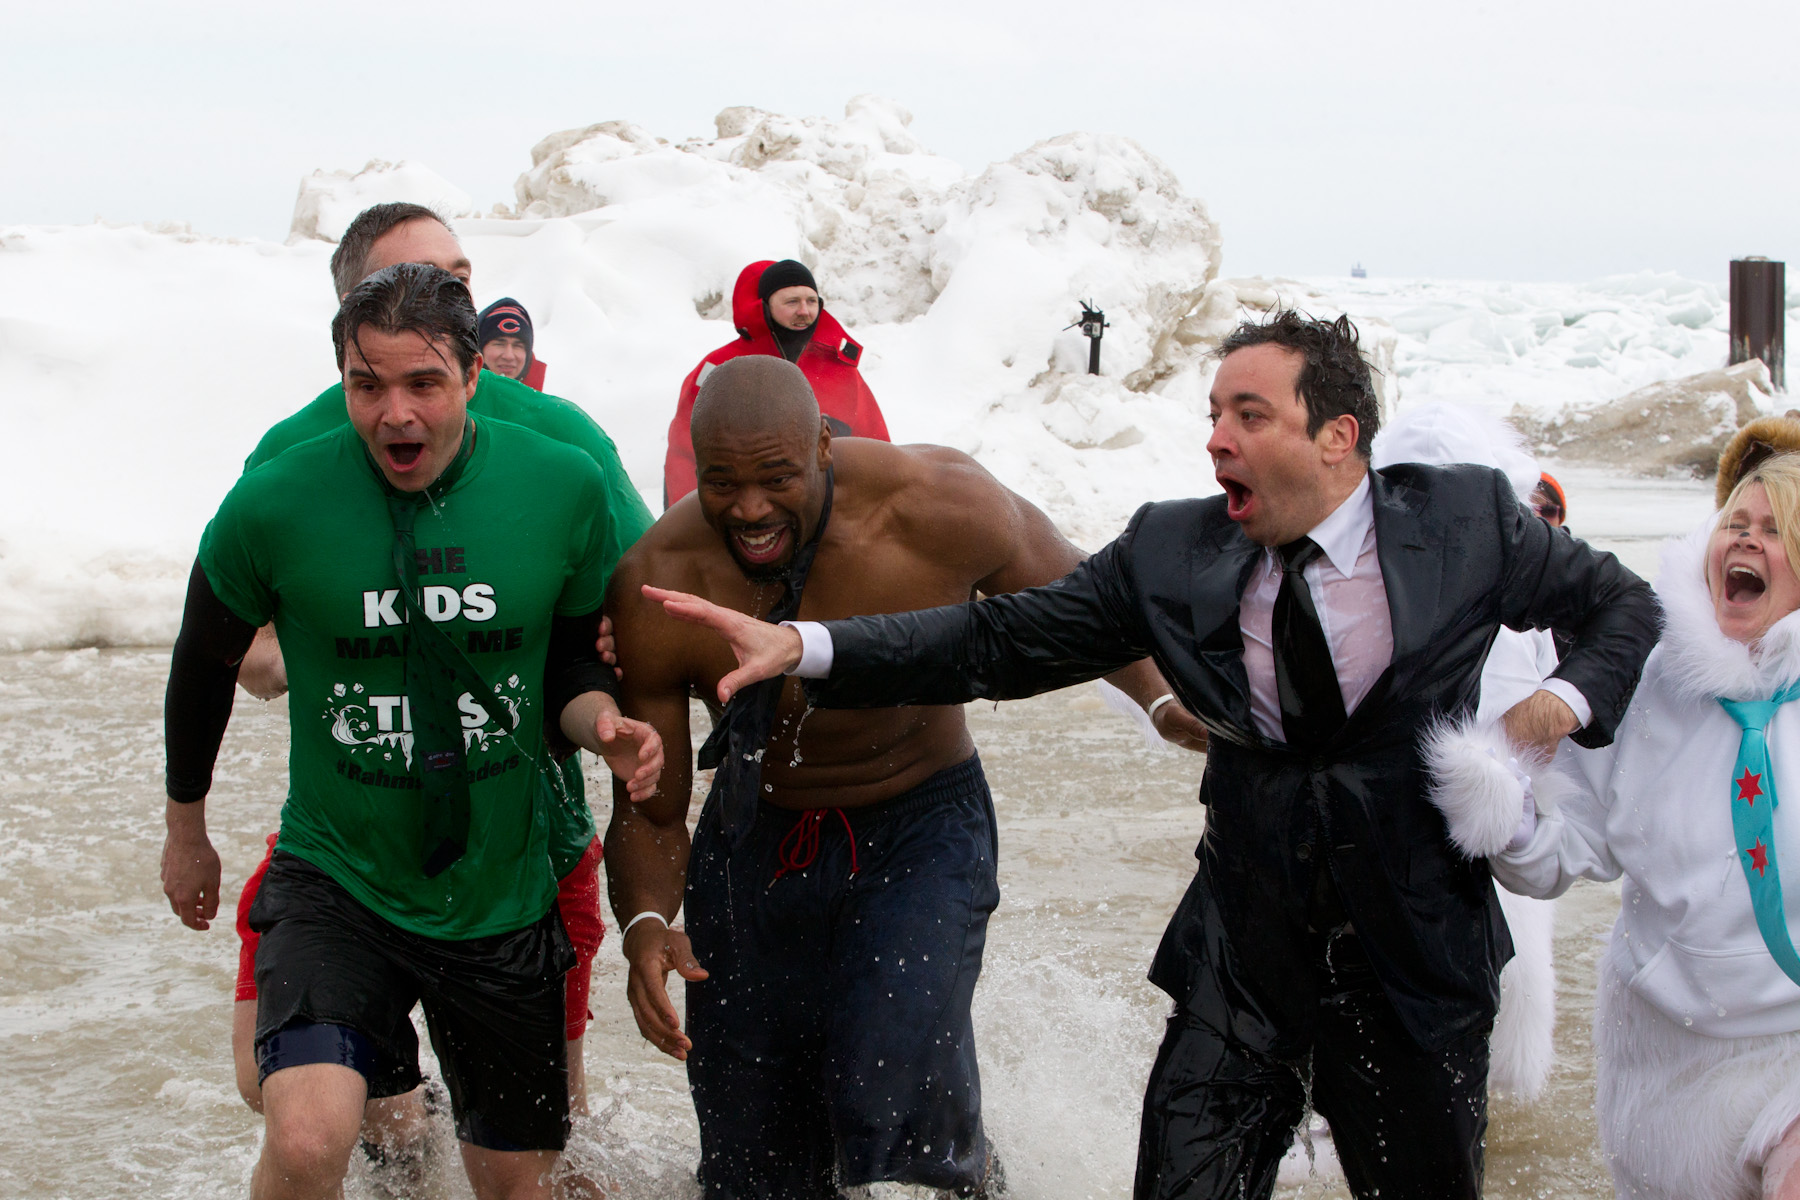 Jimmy Fallon, Israel Idonije, Brian Bannon and Mike Kelly participate in the Polar Plunge